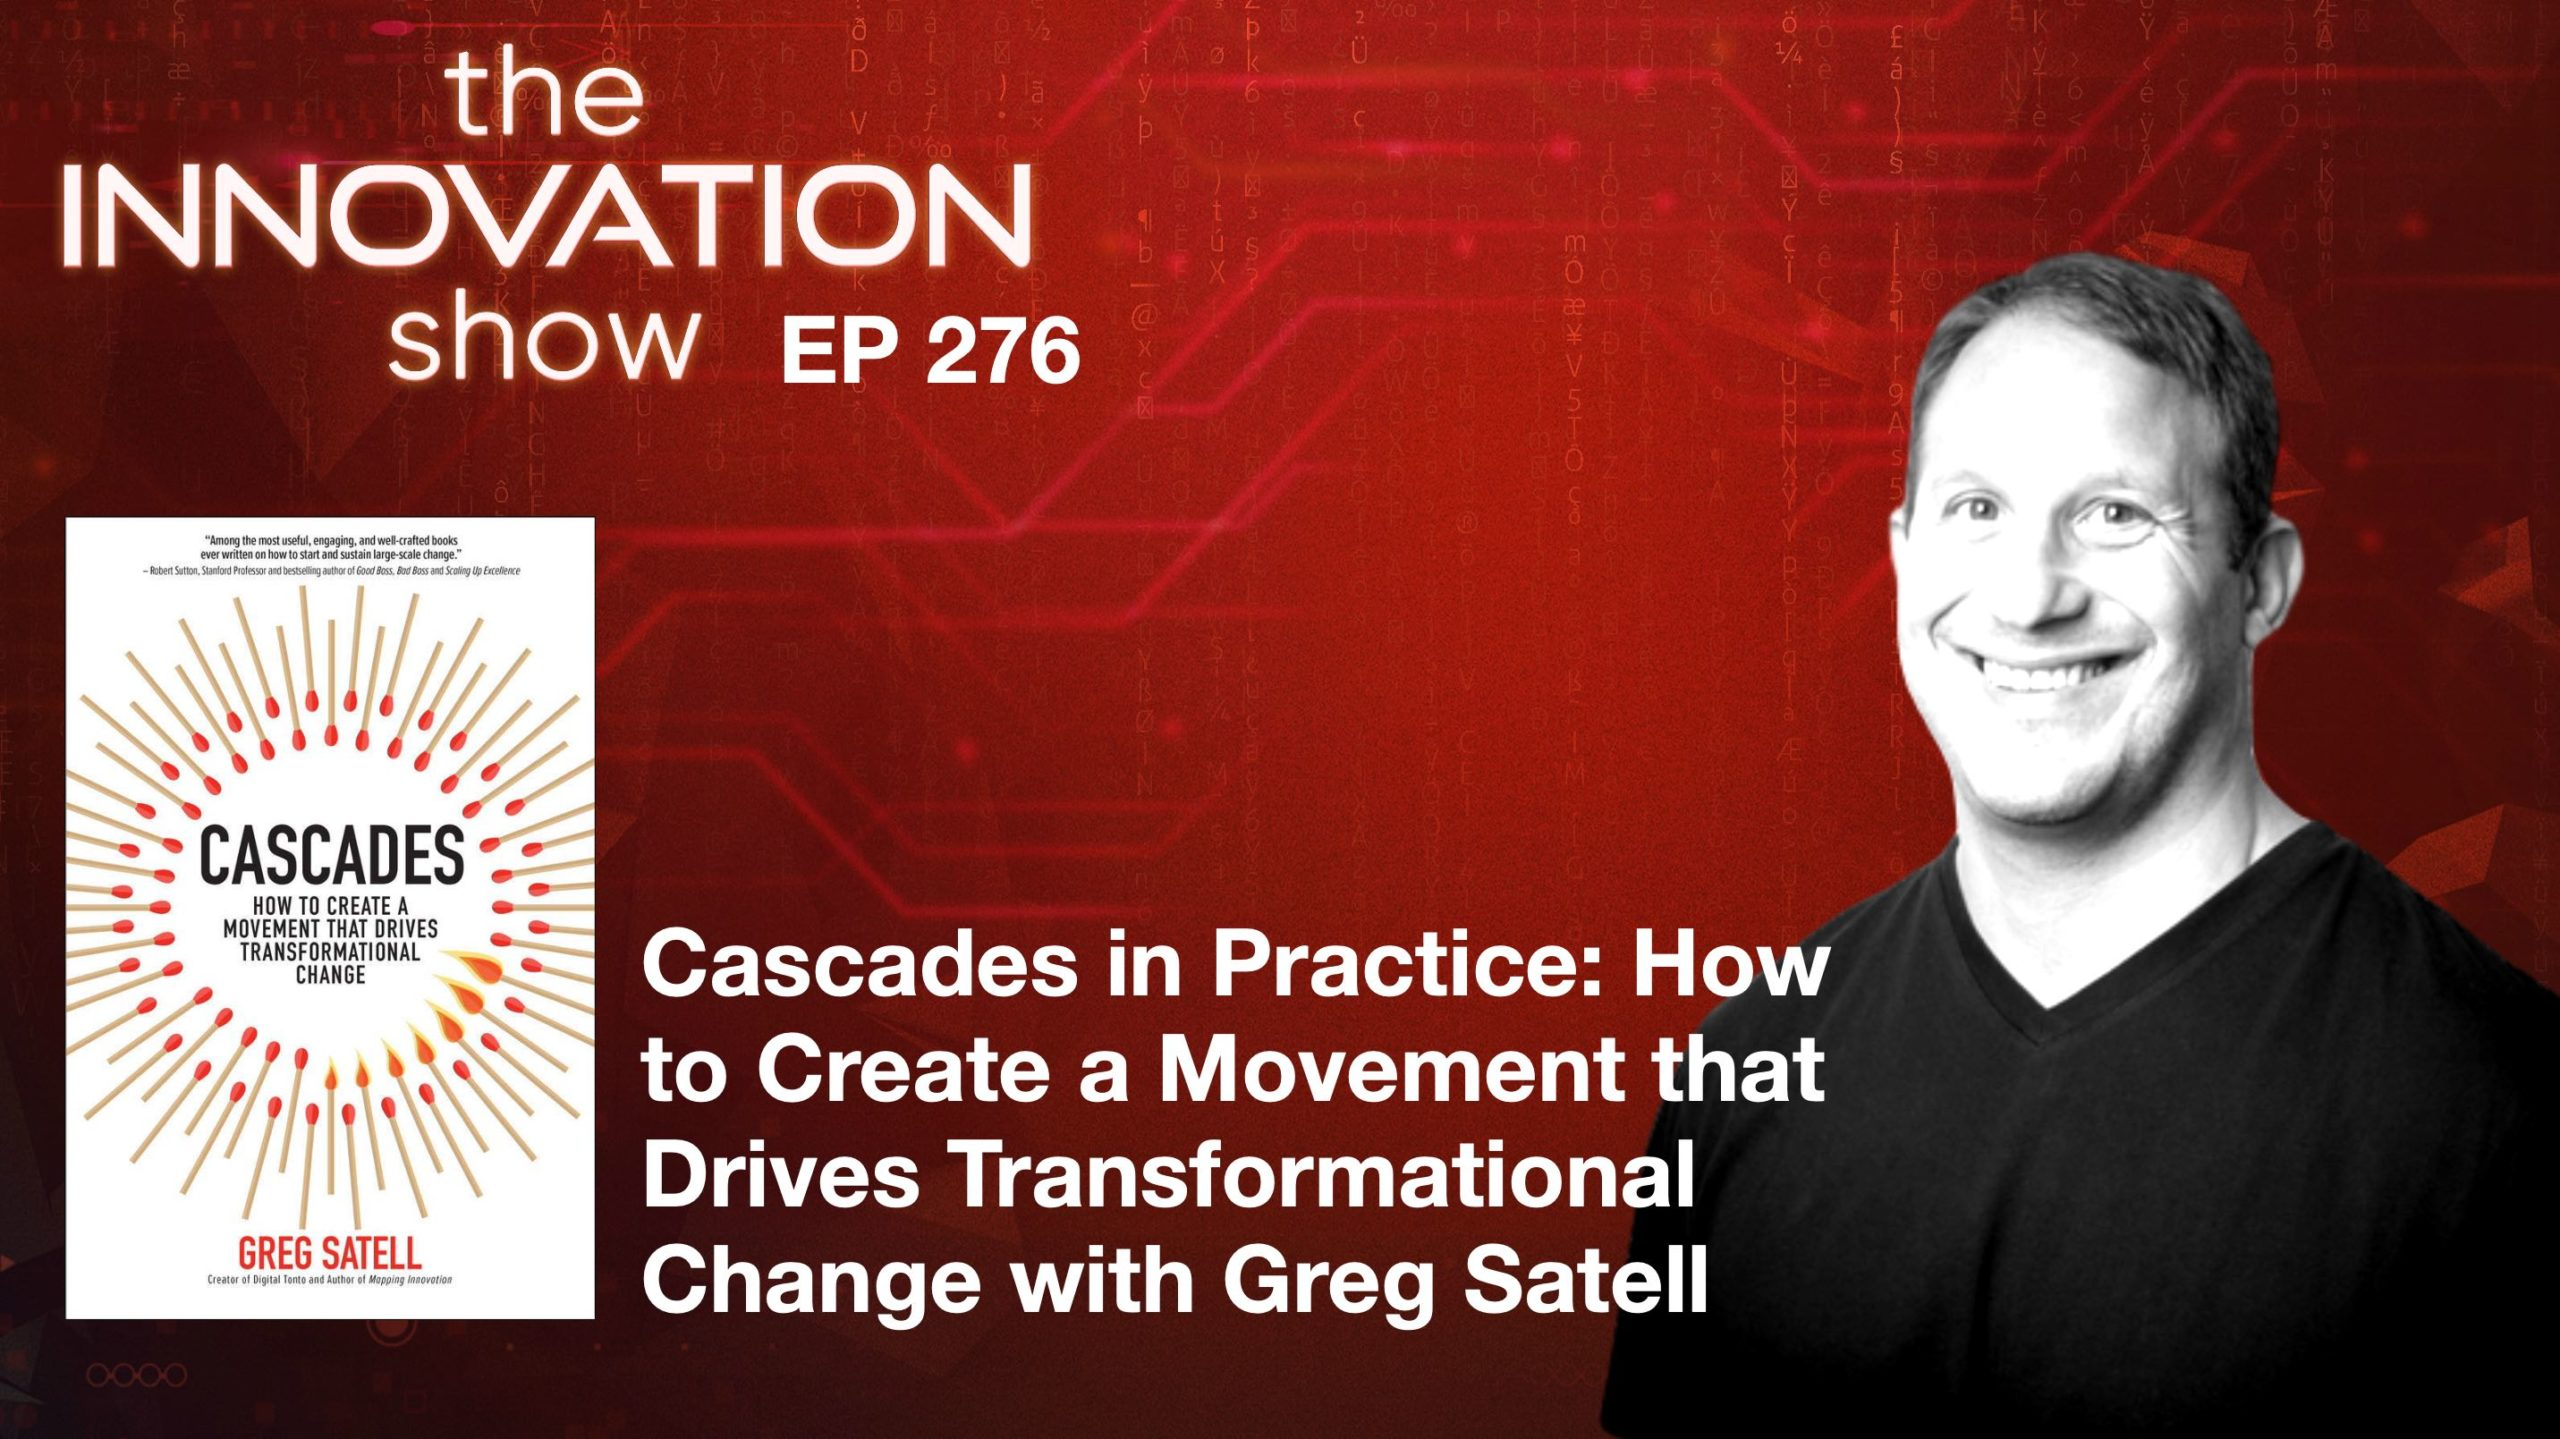 Cascades: How to Create a Movement that Drives Transformational Change, with Greg Satell.